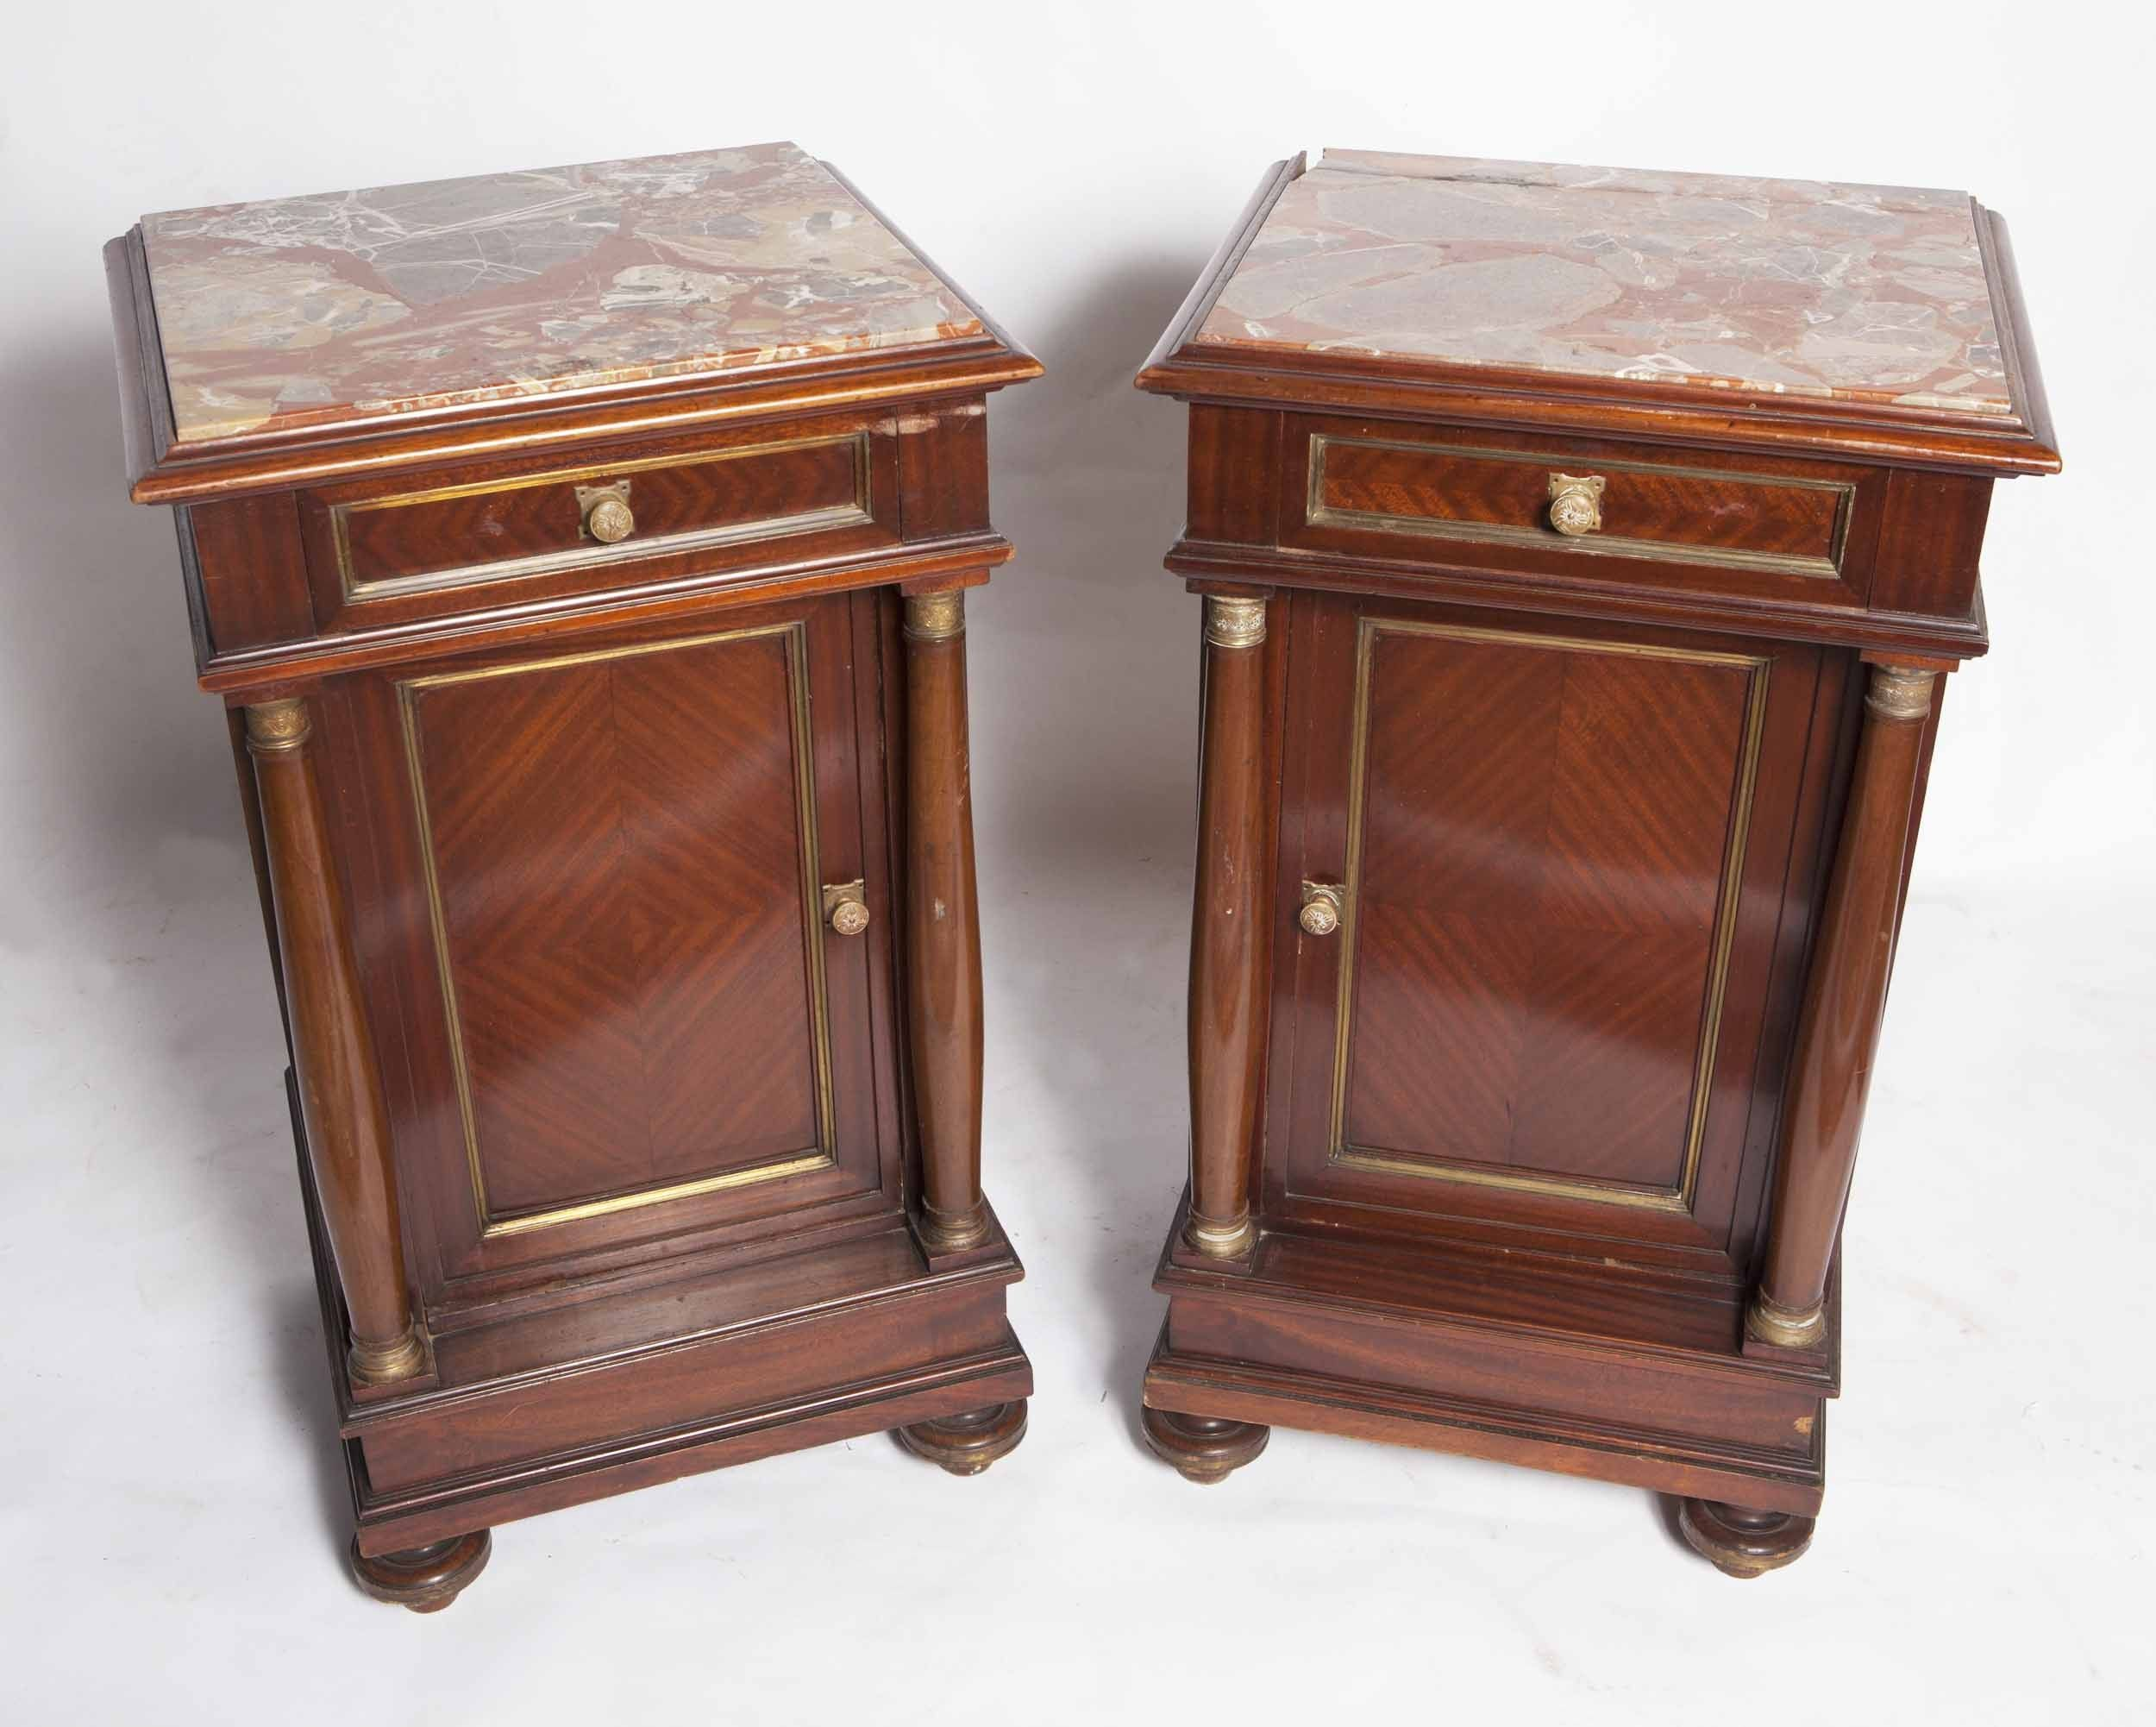 Unusual Century French Second Empire Antique Bedside Table Furniture ...